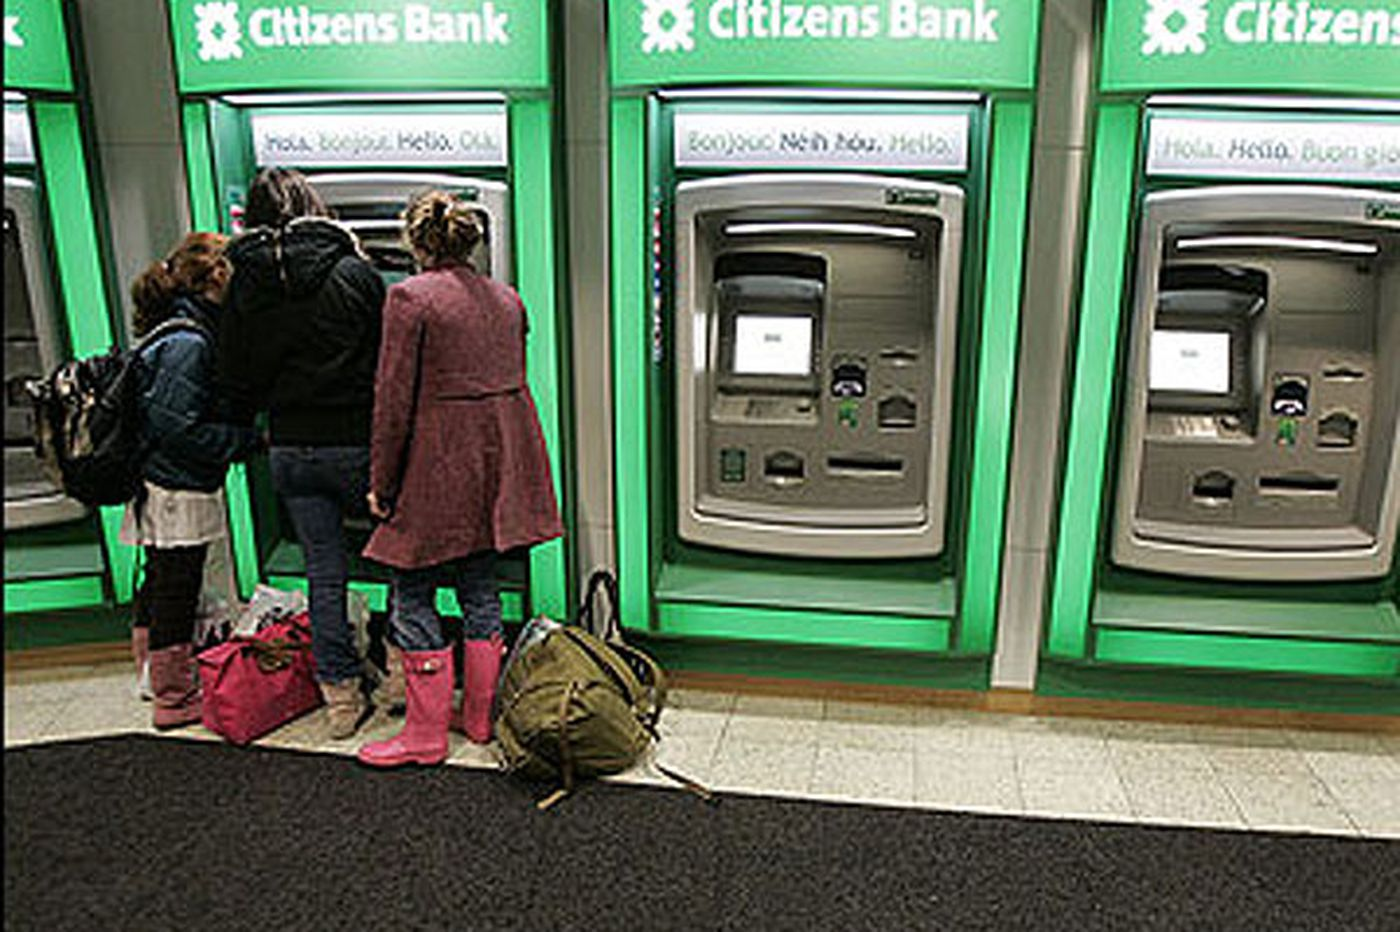 PhillyDeals: Is pressure on RBS holding back Citizens Bank in Philly?